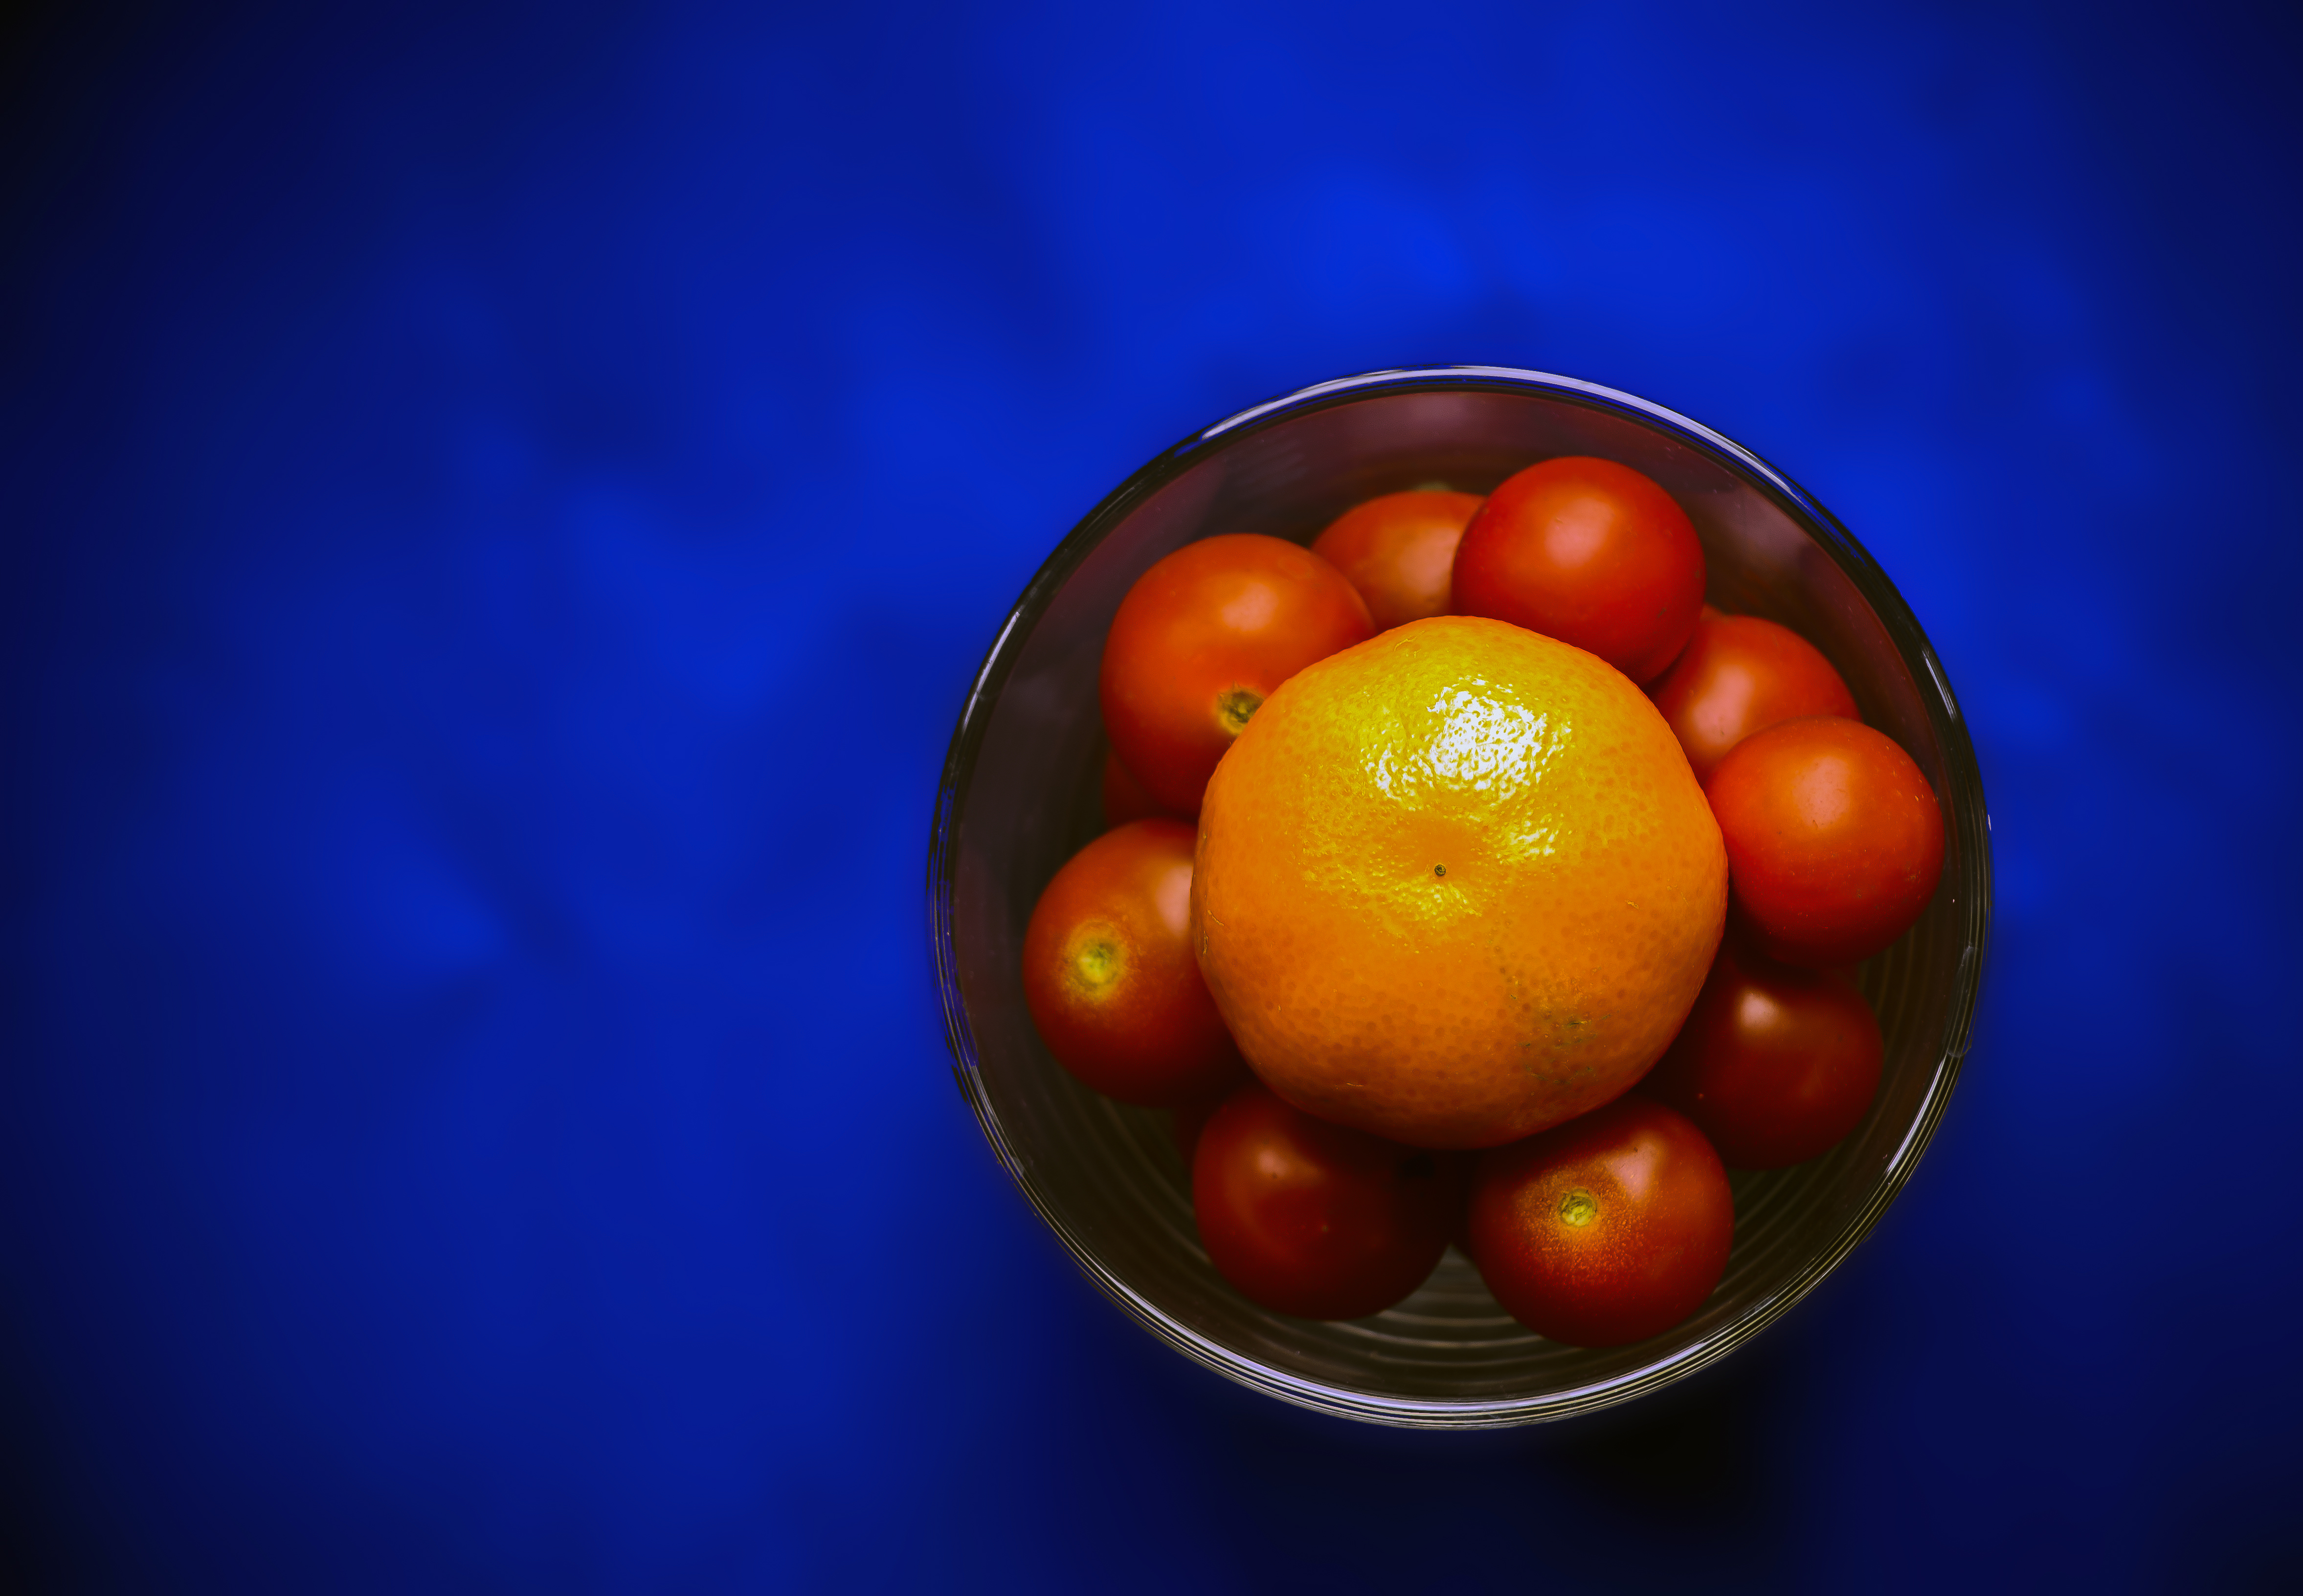 Flickr images reviewed by FlickreviewR 2, Tangerines, Tomatoes